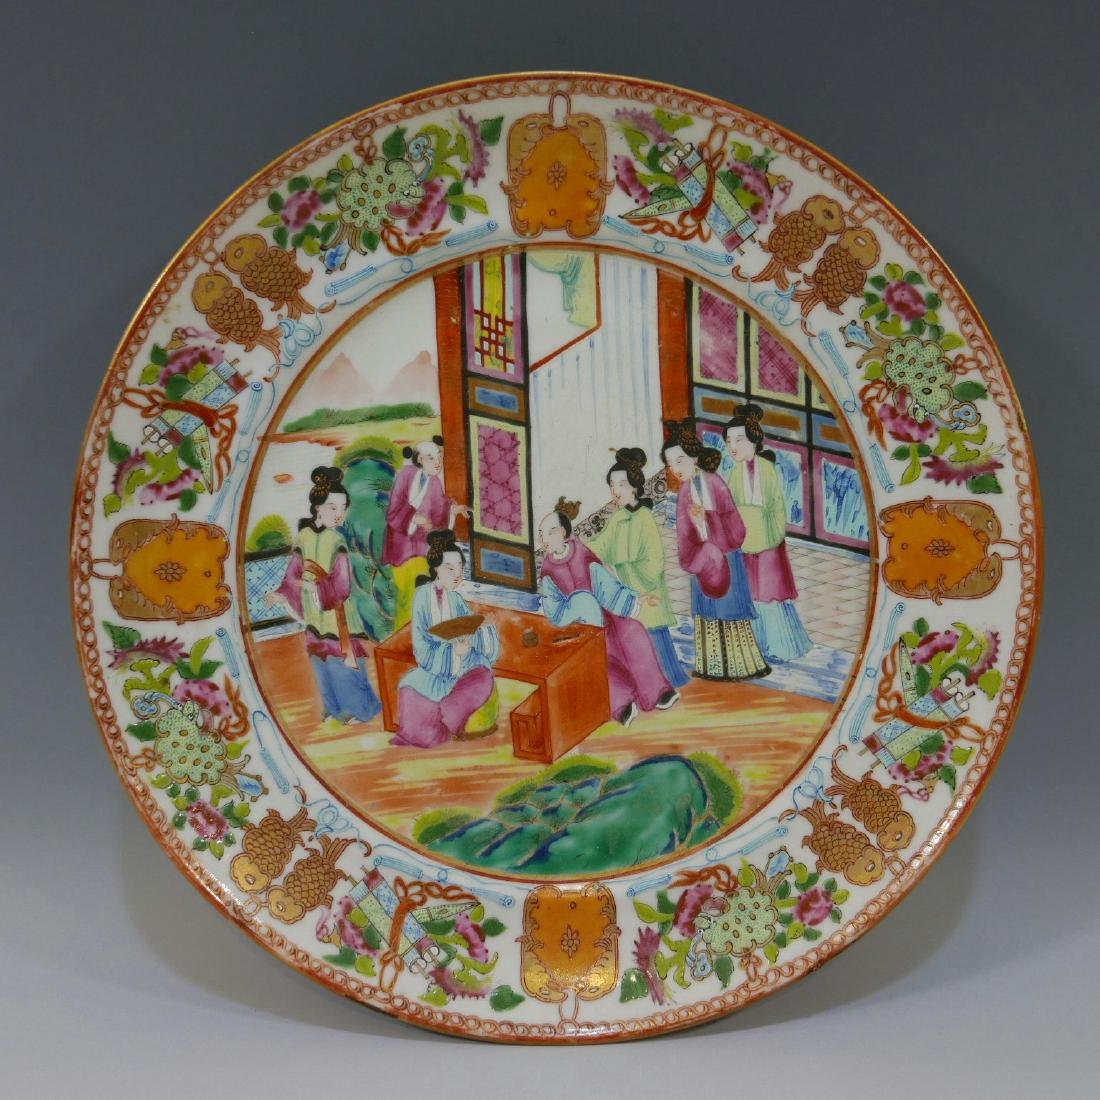 CHINESE ANTIQUE FAMILLE ROSE PORCELAIN PLATE - 19TH